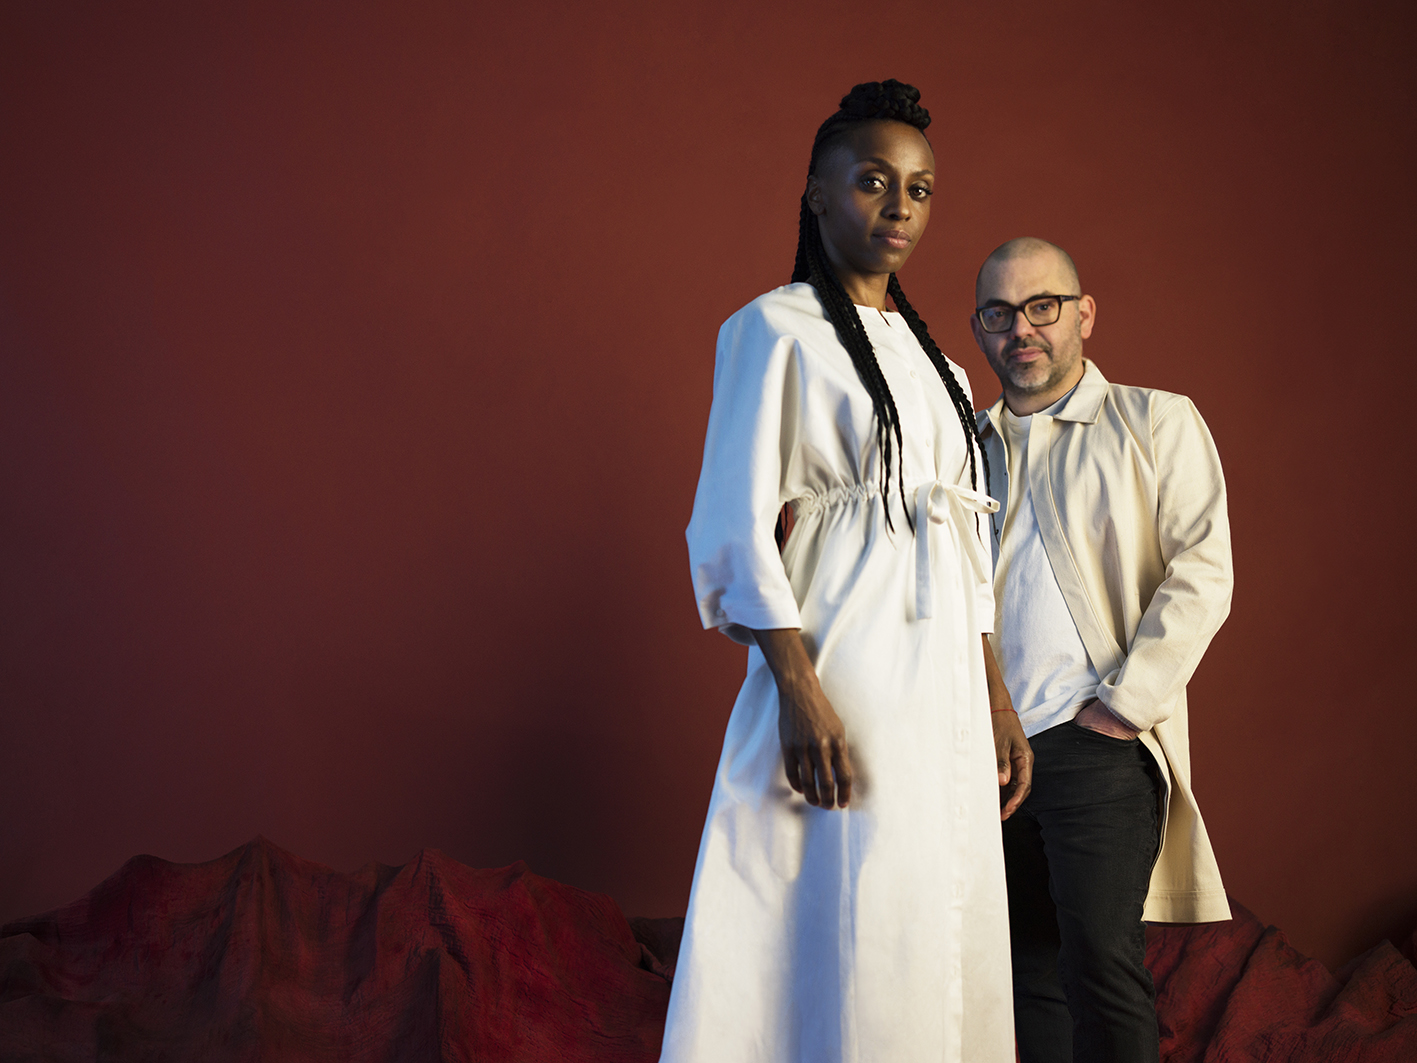 Morcheeba interview - Skye Edwards and Ross Godfrey on their new album Blaze Away